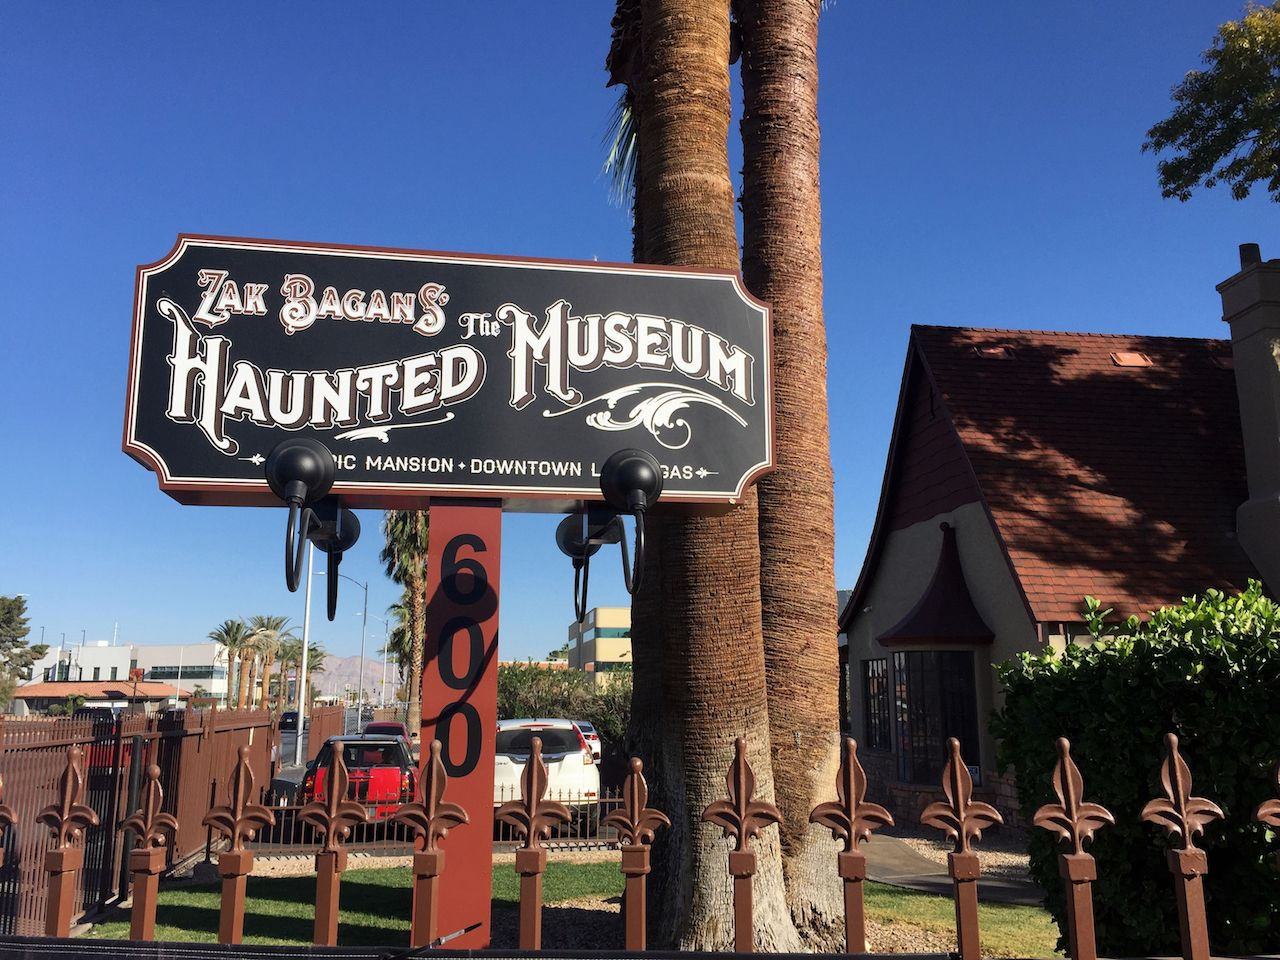 Zak Bagan's The Haunted Entrance Sign Museum